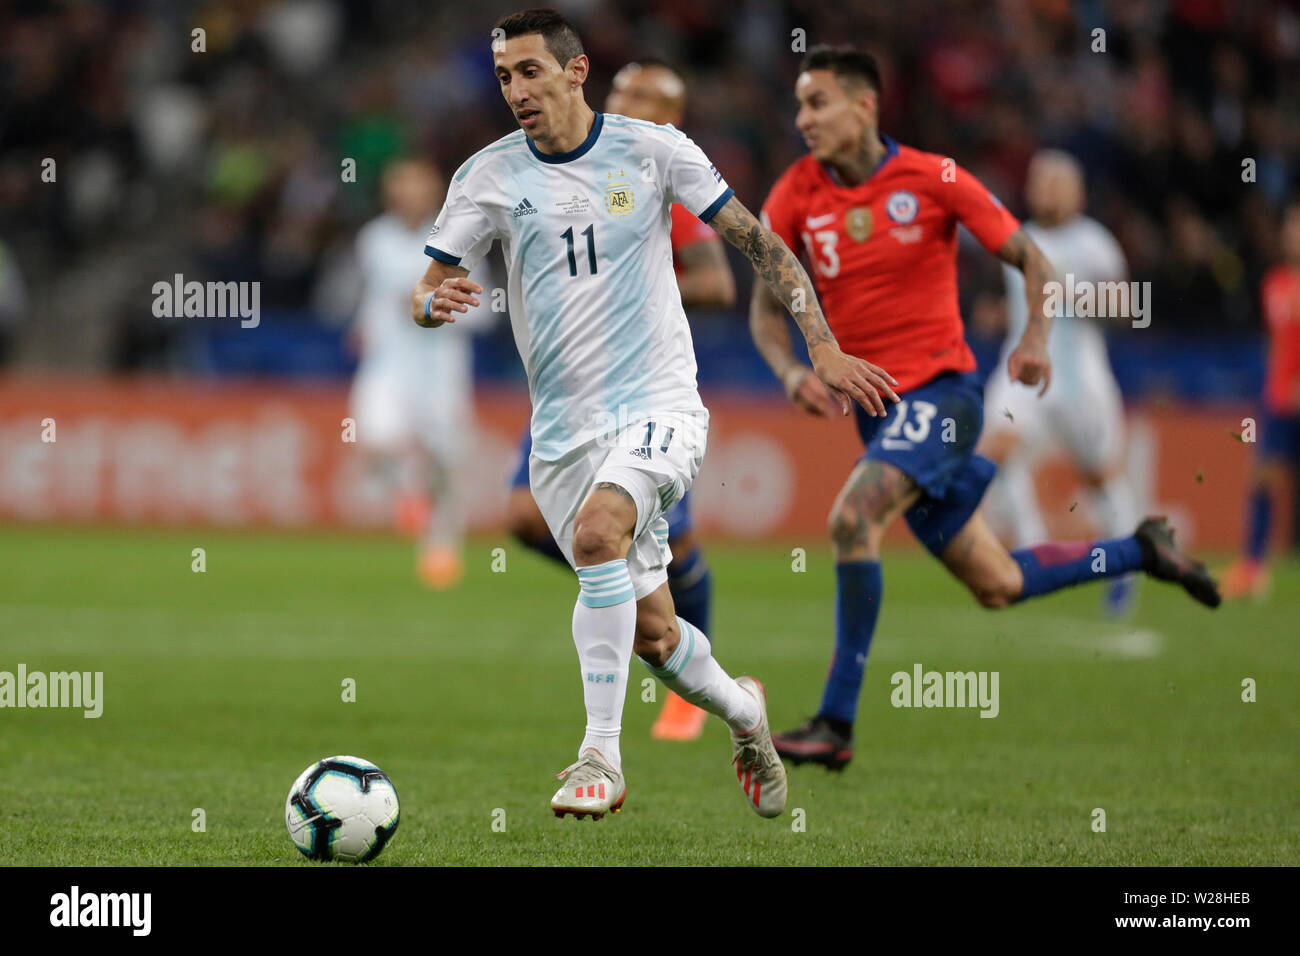 Sao Paulo, Brazil. 6th July, 2019. Argentina's Angel Di Maria (front) competes during the 3rd place match of Copa America 2019 between Argentina and Chile in Sao Paulo, Brazil, July 6, 2019. Credit: Francisco Canedo/Xinhua/Alamy Live News - Stock Image